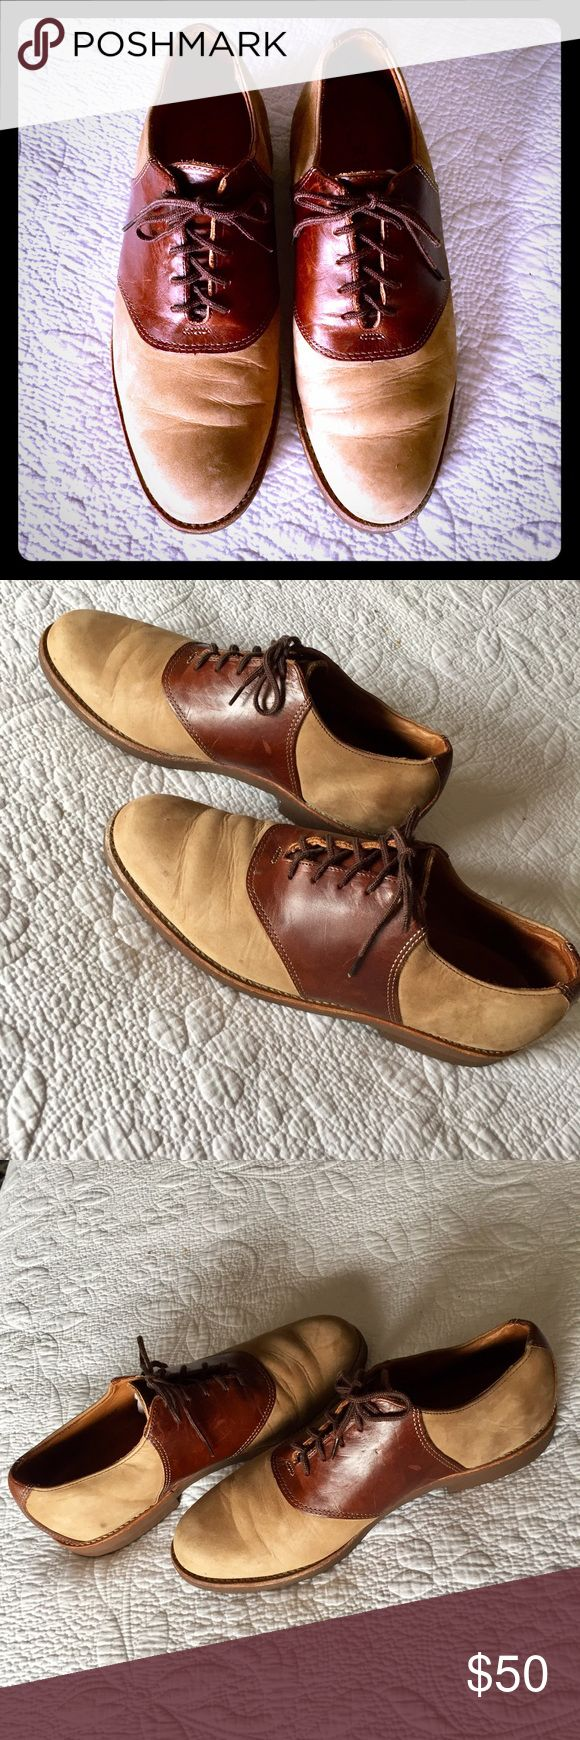 🌟VINTAGE🌟jCrew Men's Saddle Shoes An absolutely beautiful pair of 80's & 90's vintage saddle oxfords by JCrew.  Traditional saddle shoe featuring  two-tone colors of saddle brown and tan suede with brown soles. A beautifully made classic with gorgeous leather that is perfectly stitched, perfectly cut and lined, stamped inside leather.  Excellent used condition with minor scratches on leather.  Please see pictures for detail.  Size 9.5 M. J. Crew Shoes Oxfords & Derbys